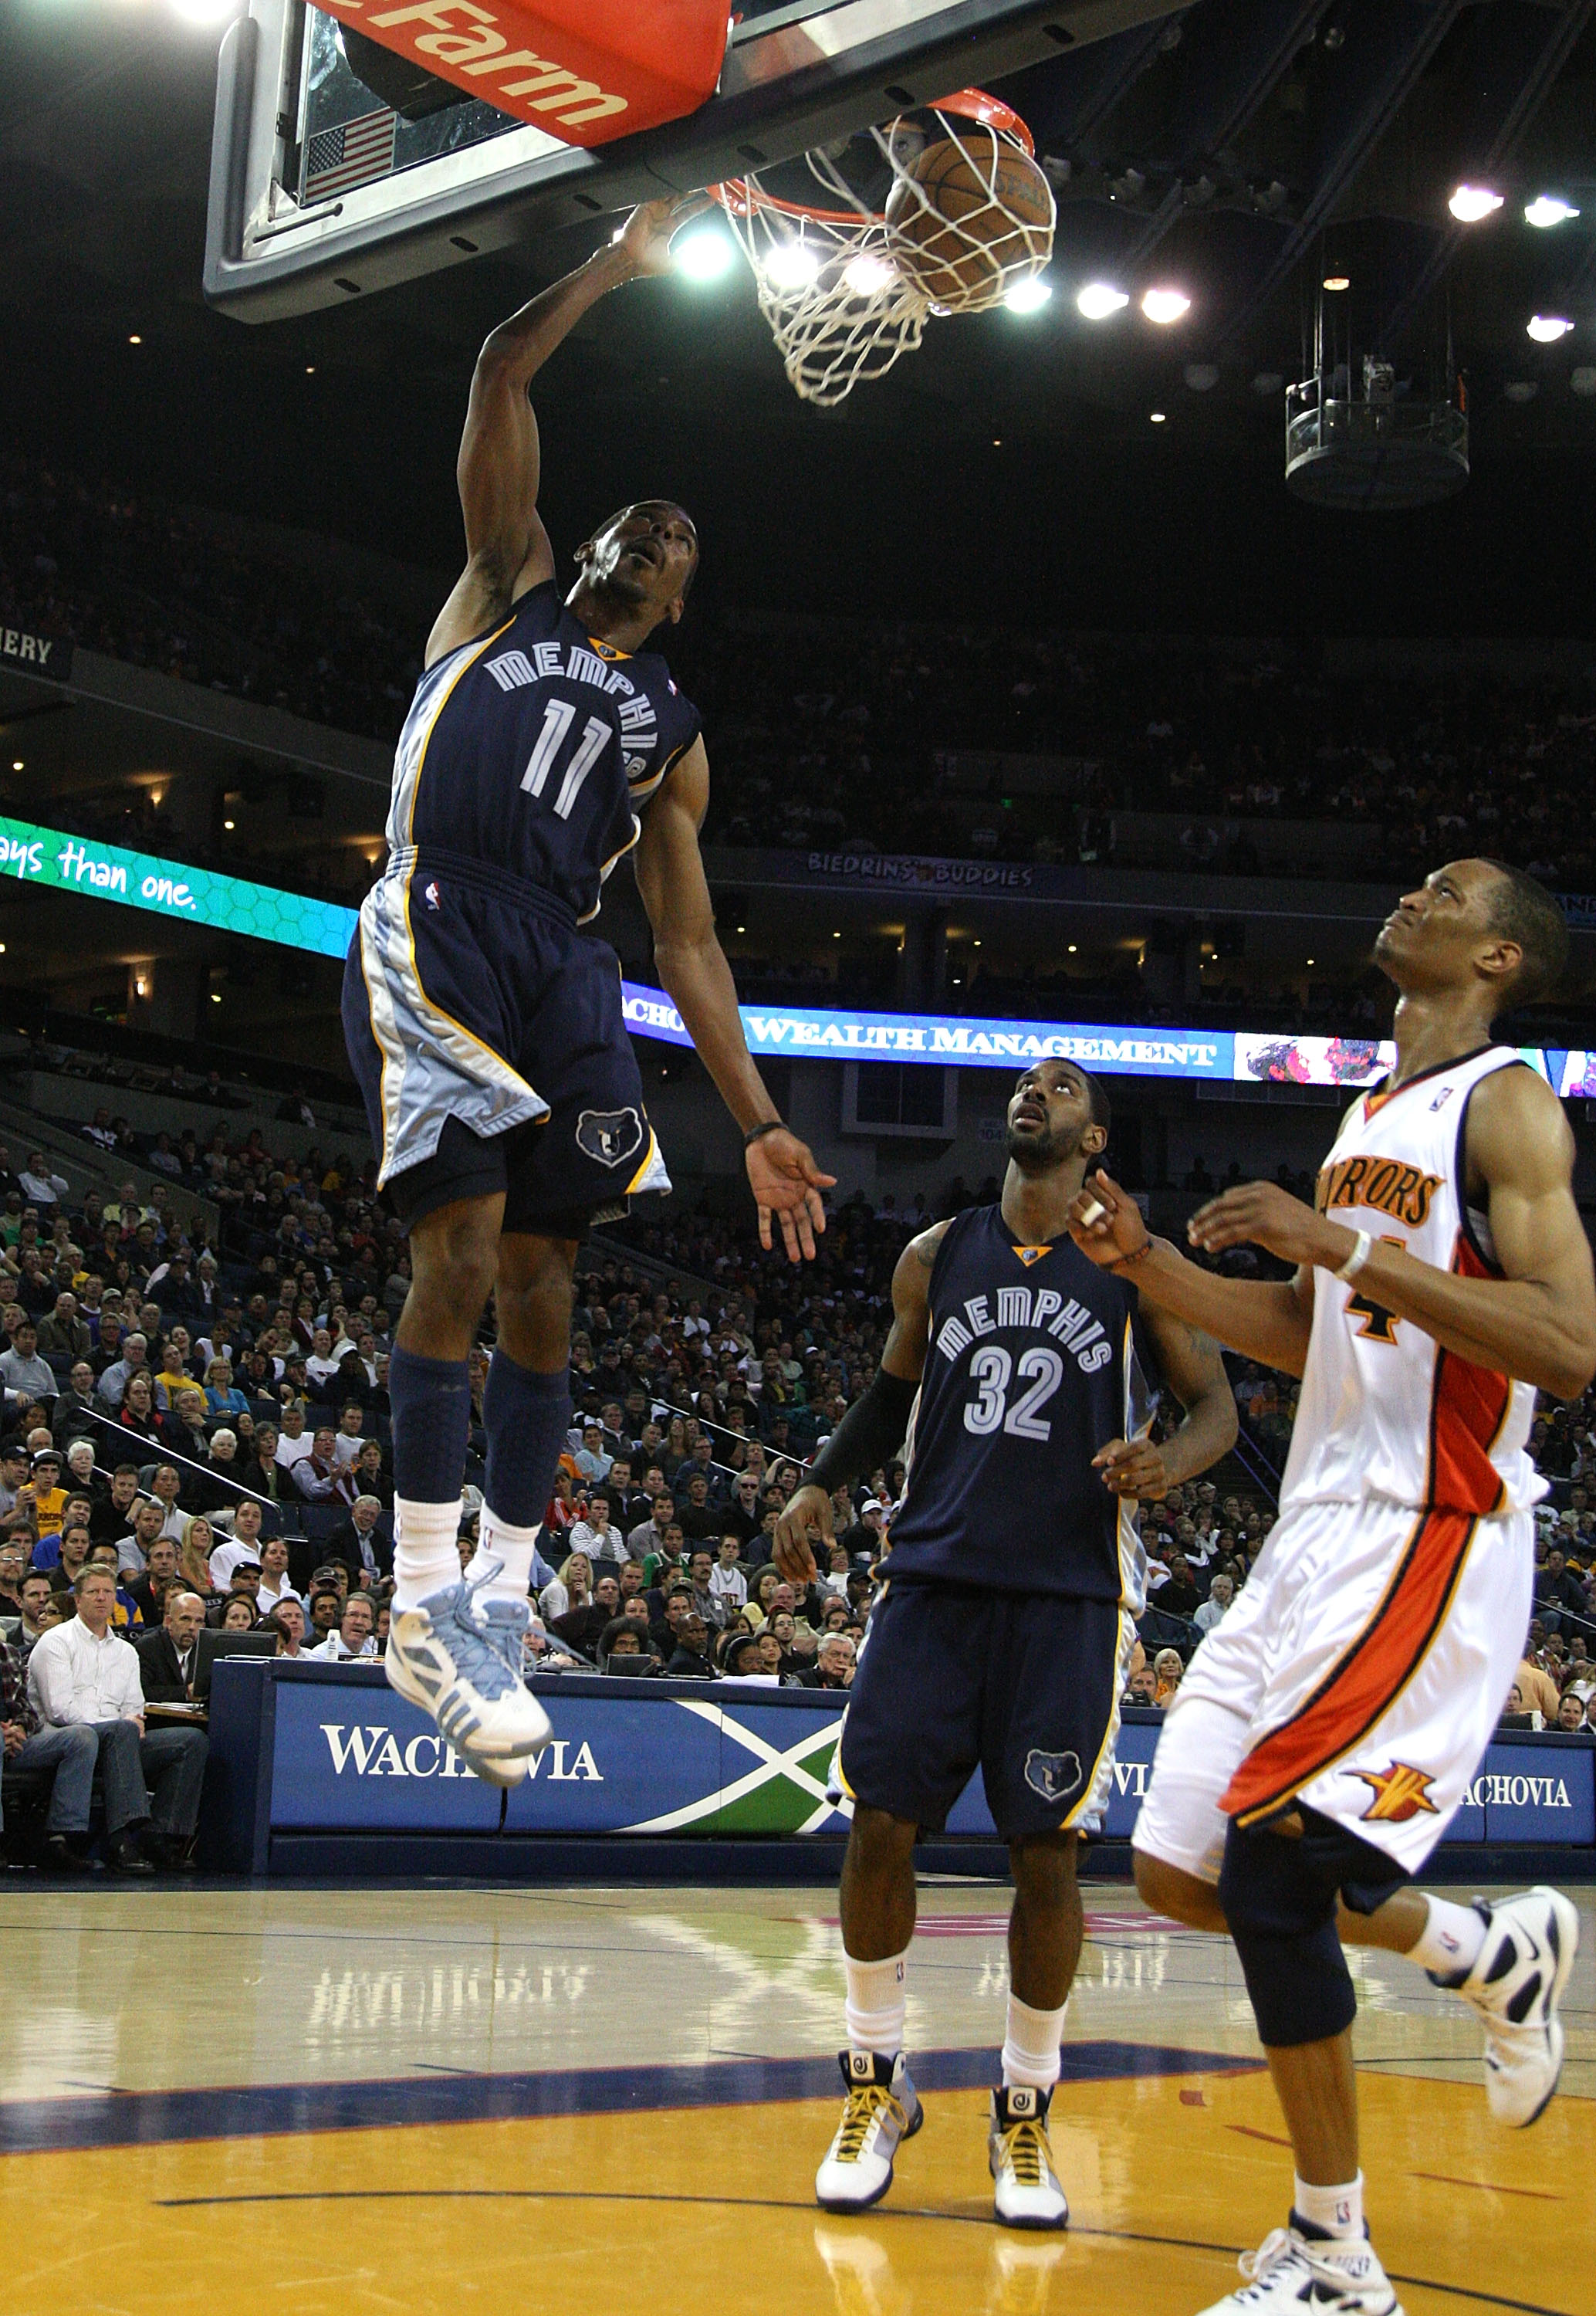 Anthony Randolph looks on as Mike Conley Jr. throws it down against the Warriors.